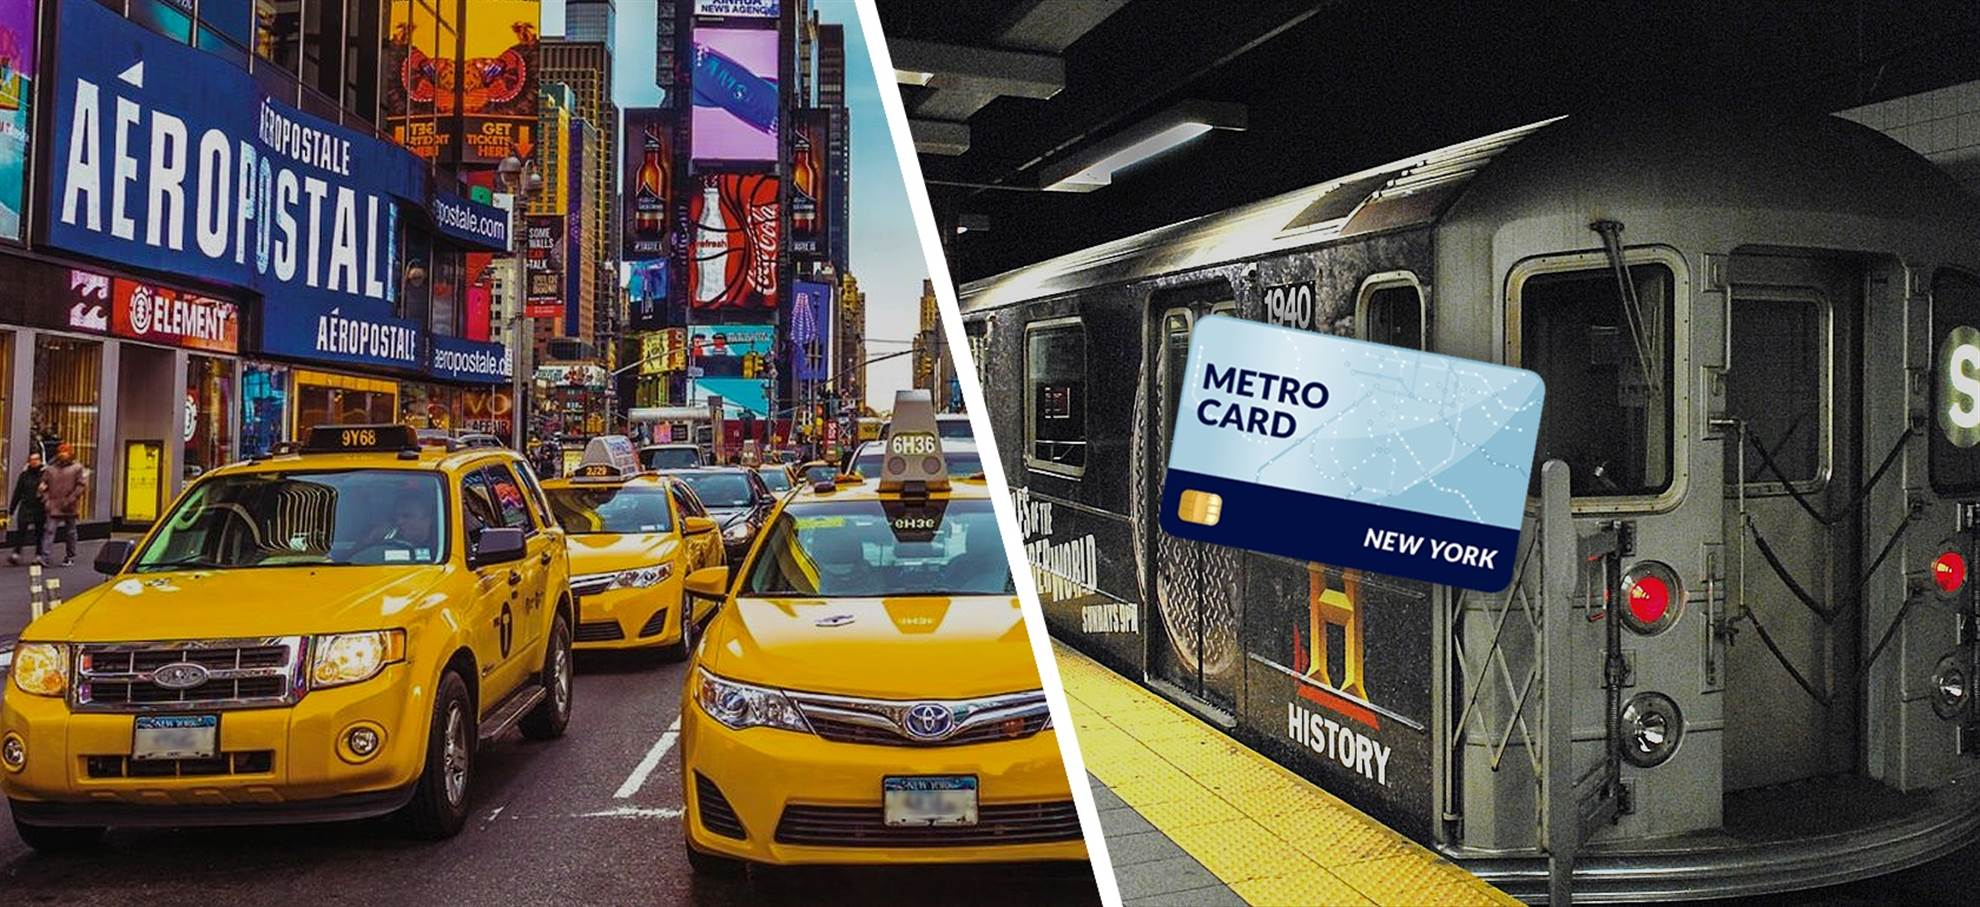 New York Travel Card